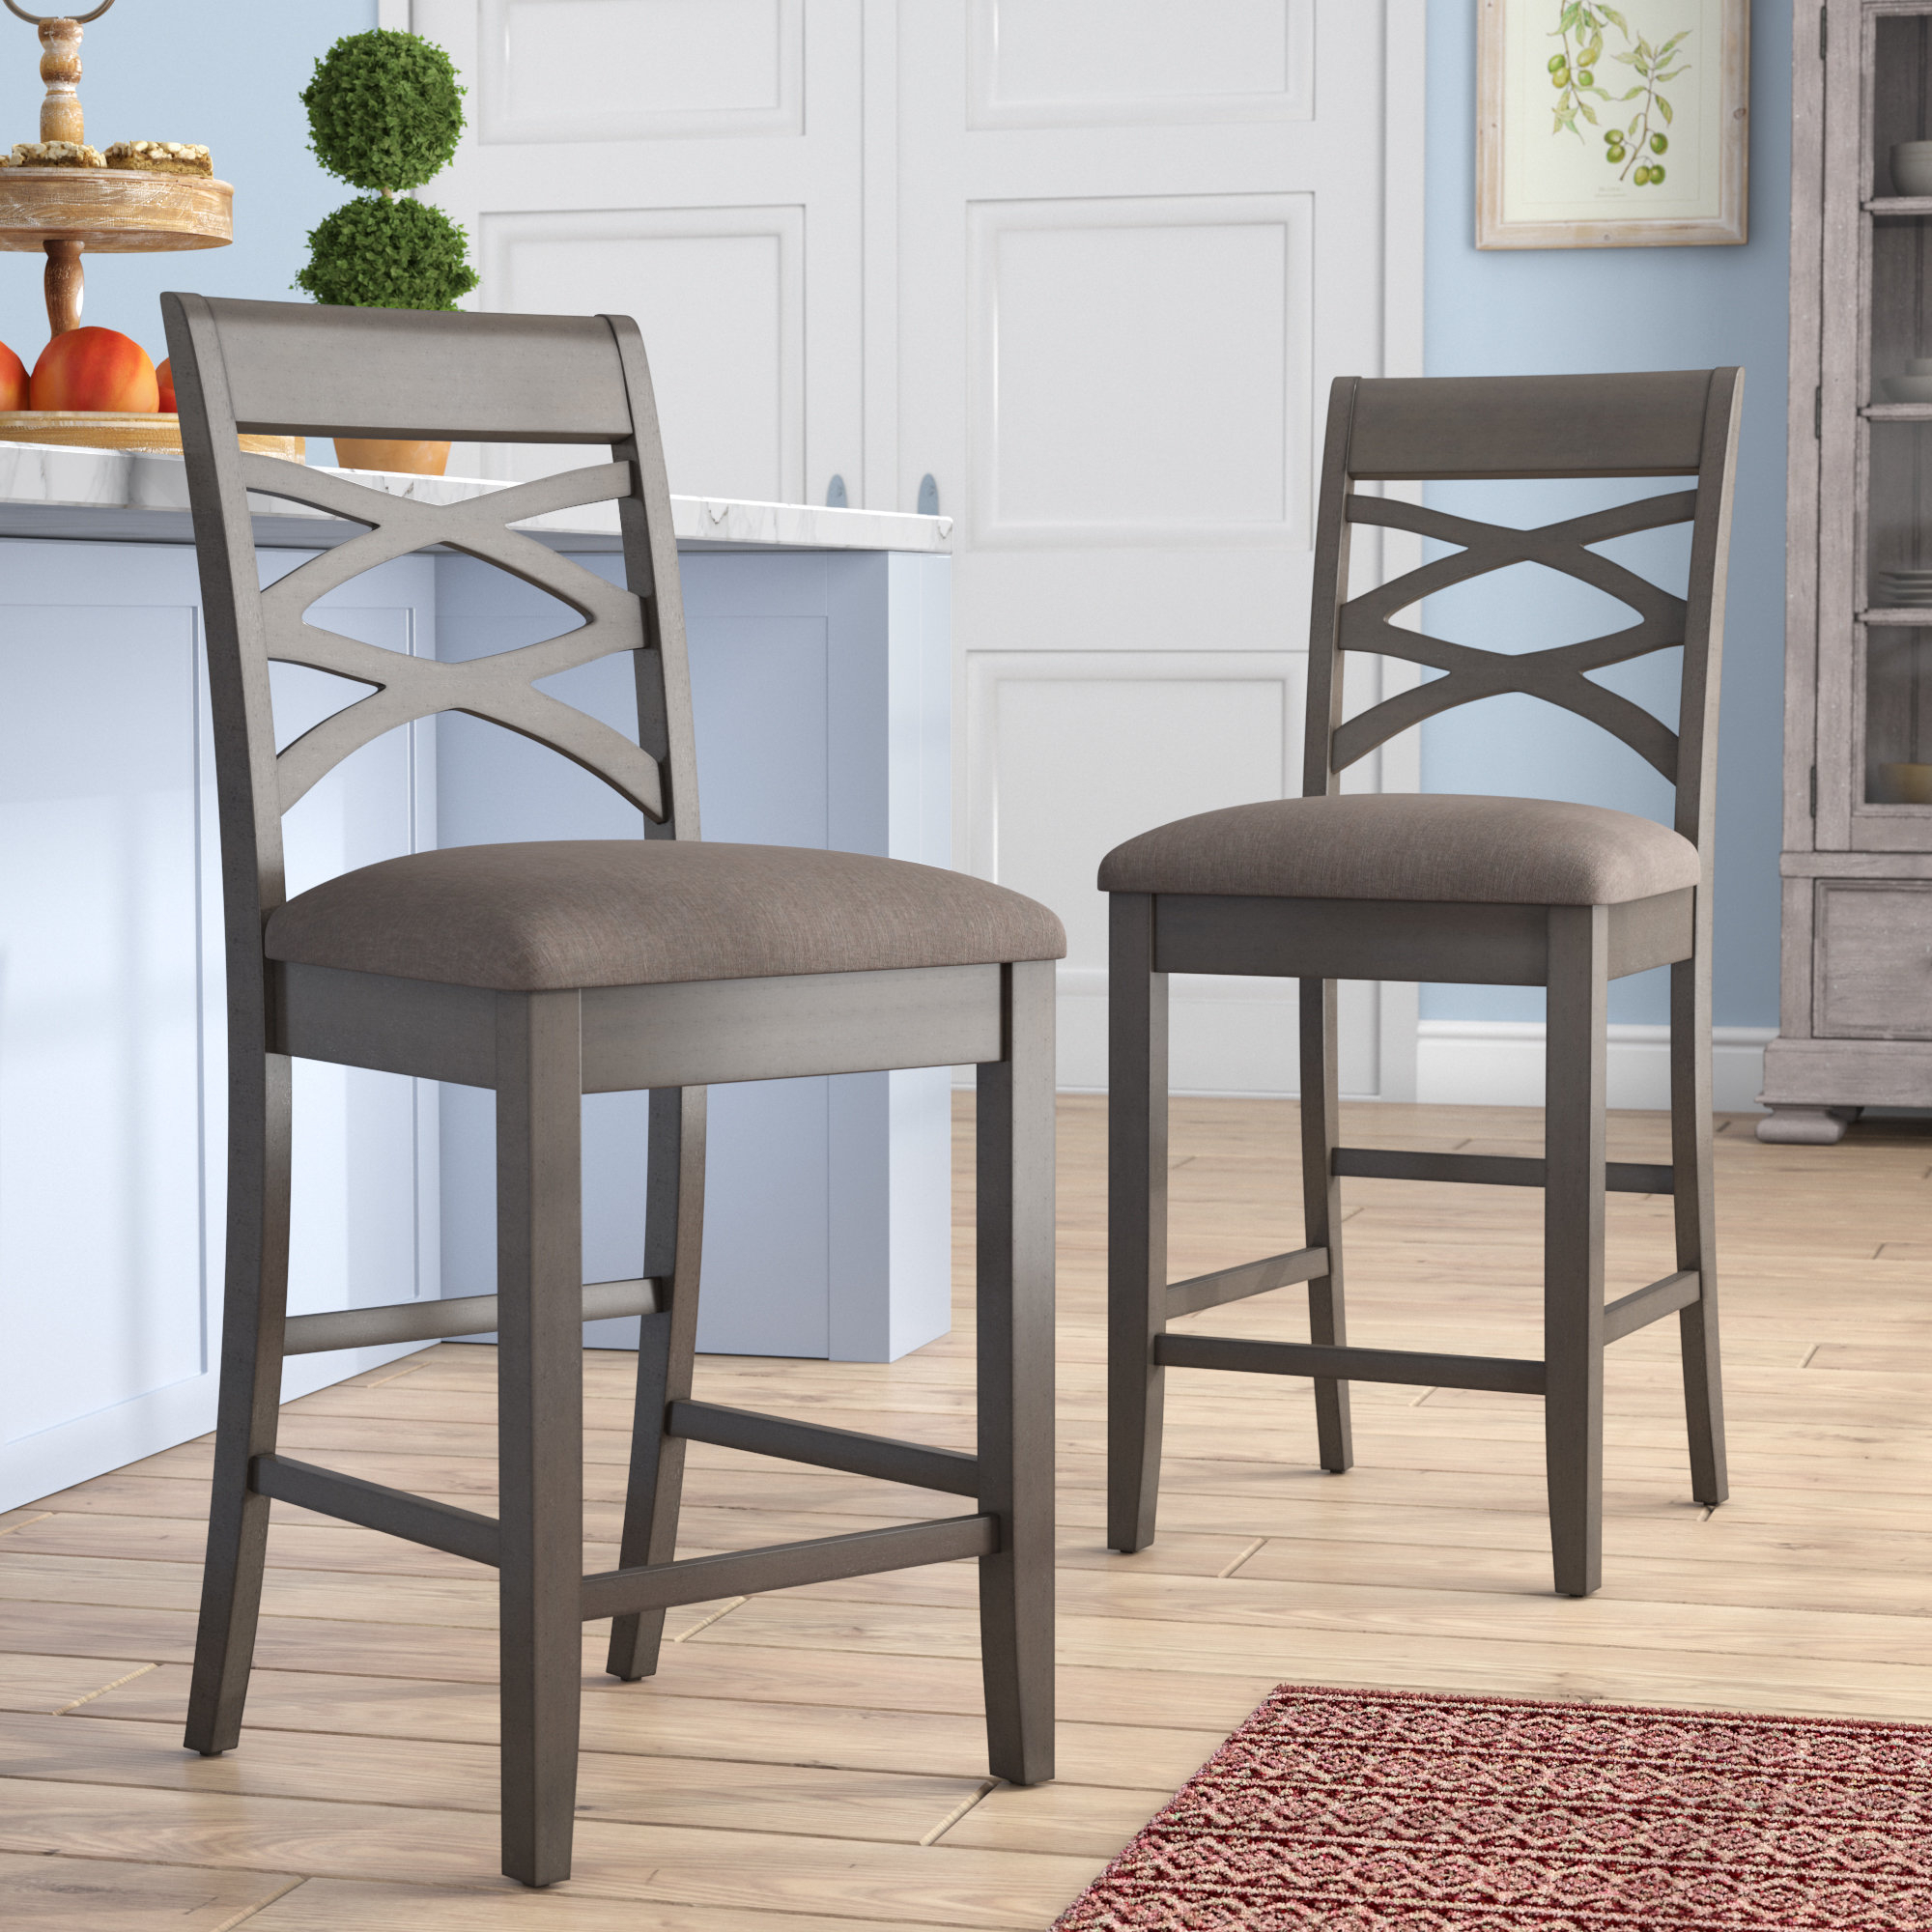 "Gracie Oaks Jeanine Wood Double Cross Back 24"" Bar Stool & Reviews Within Bailey Angled Track Arm Swivel Gliders (View 17 of 25)"